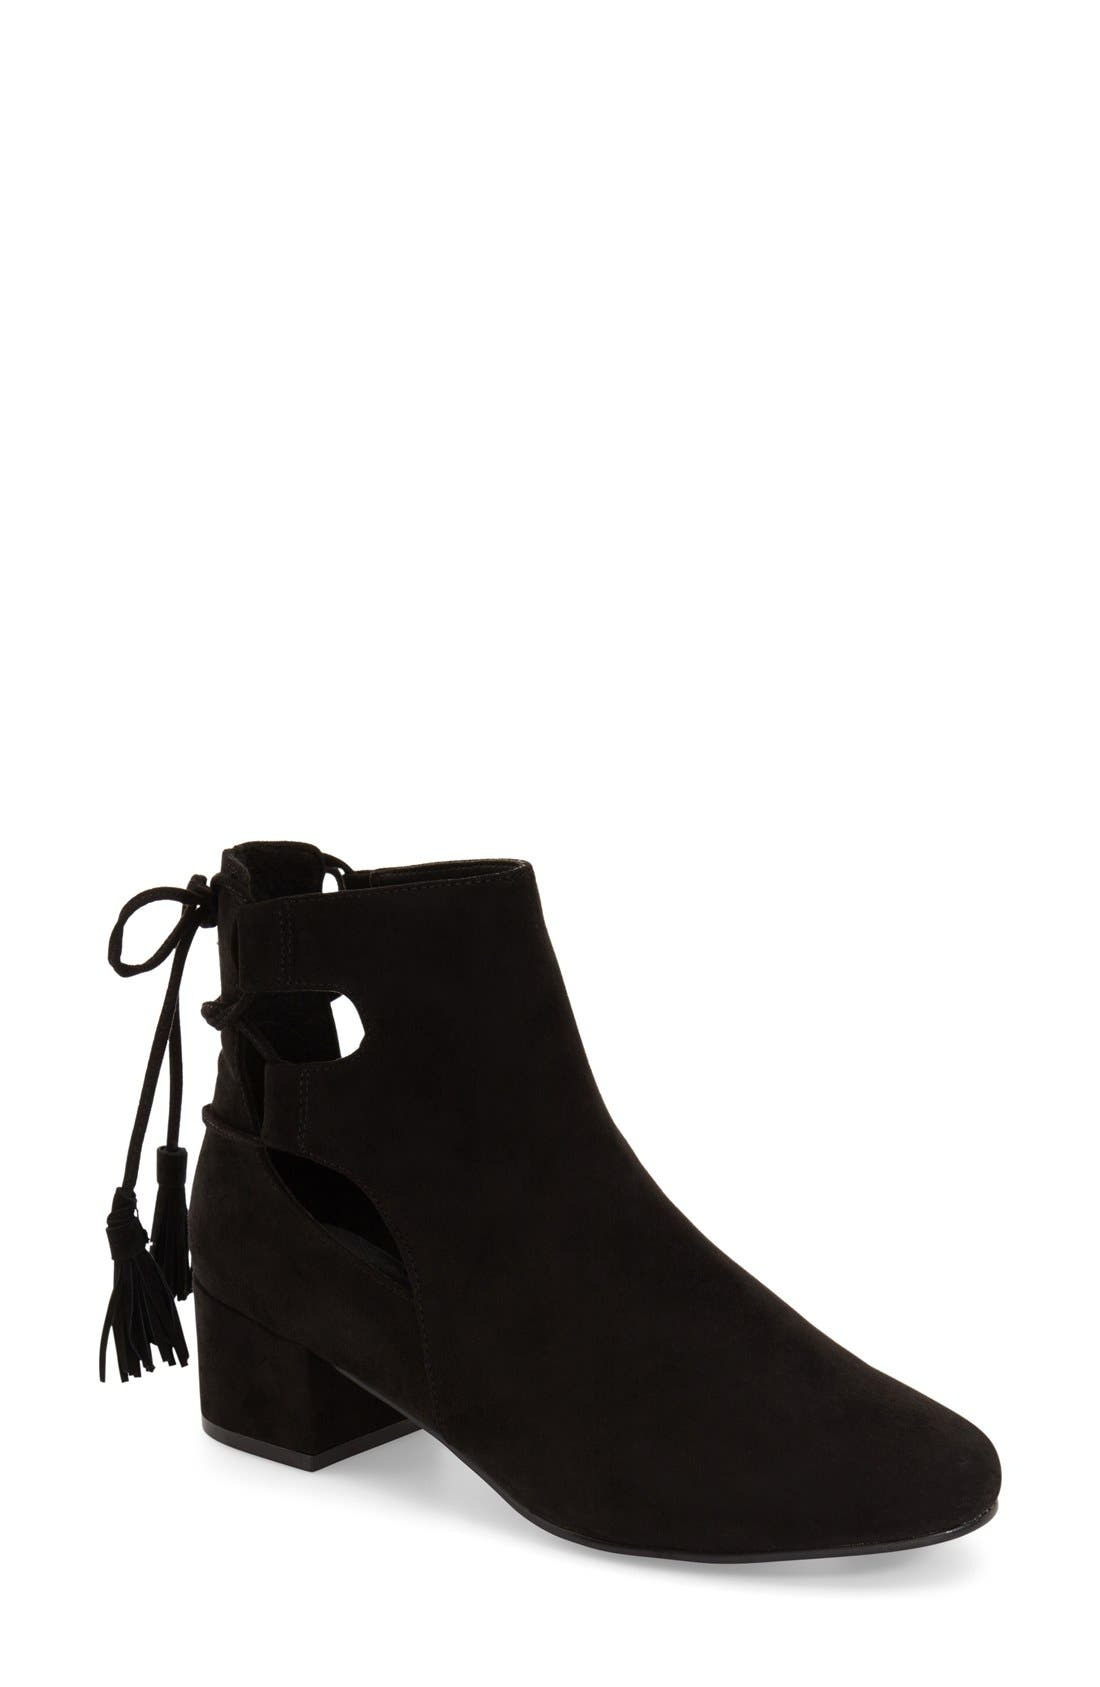 TOPSHOP, 'Kimble' Lace-Up Suede Boot, Main thumbnail 1, color, 001